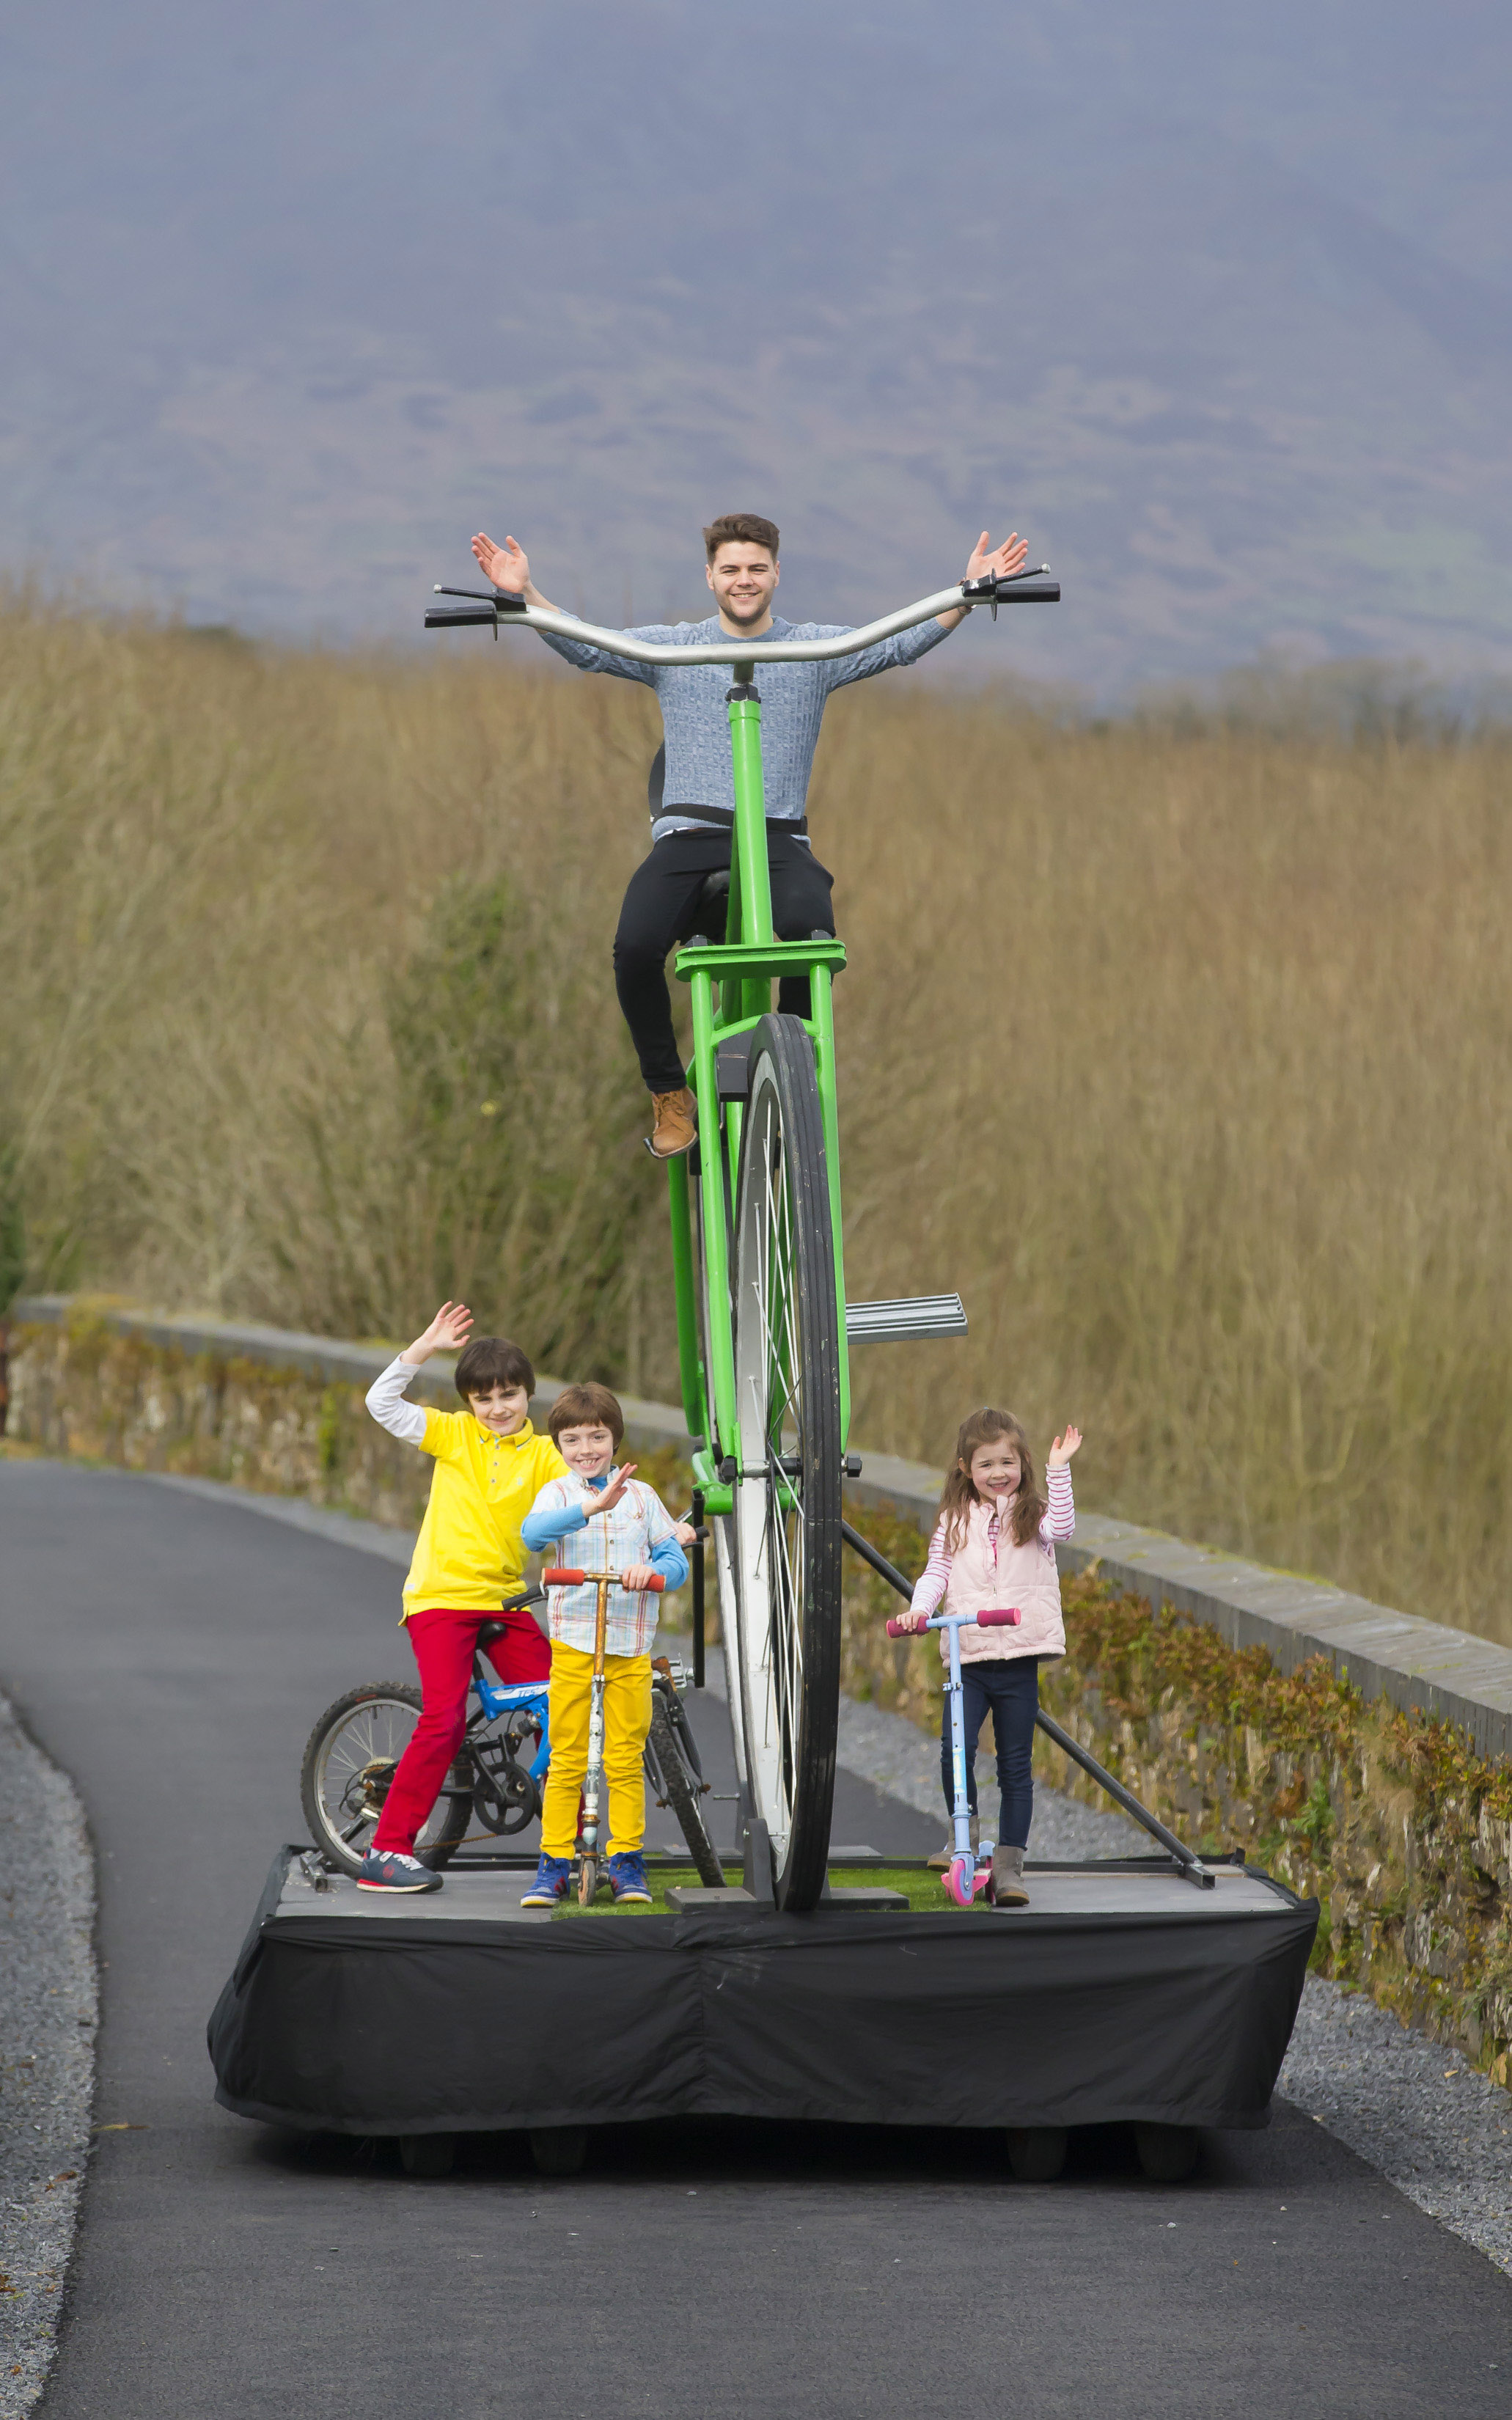 Pictured on the Waterford Greenway is Mayor of Waterford, Cllr Adam Wyse on a giant bicycle created by street arts company Buí Bolg along with Joshua Moran-Davy (10), Reuben Moran-Davy (7) and Leah Moran-Saunders (5) from Passage East, Co Waterford. (Picture: Patrick Browne)